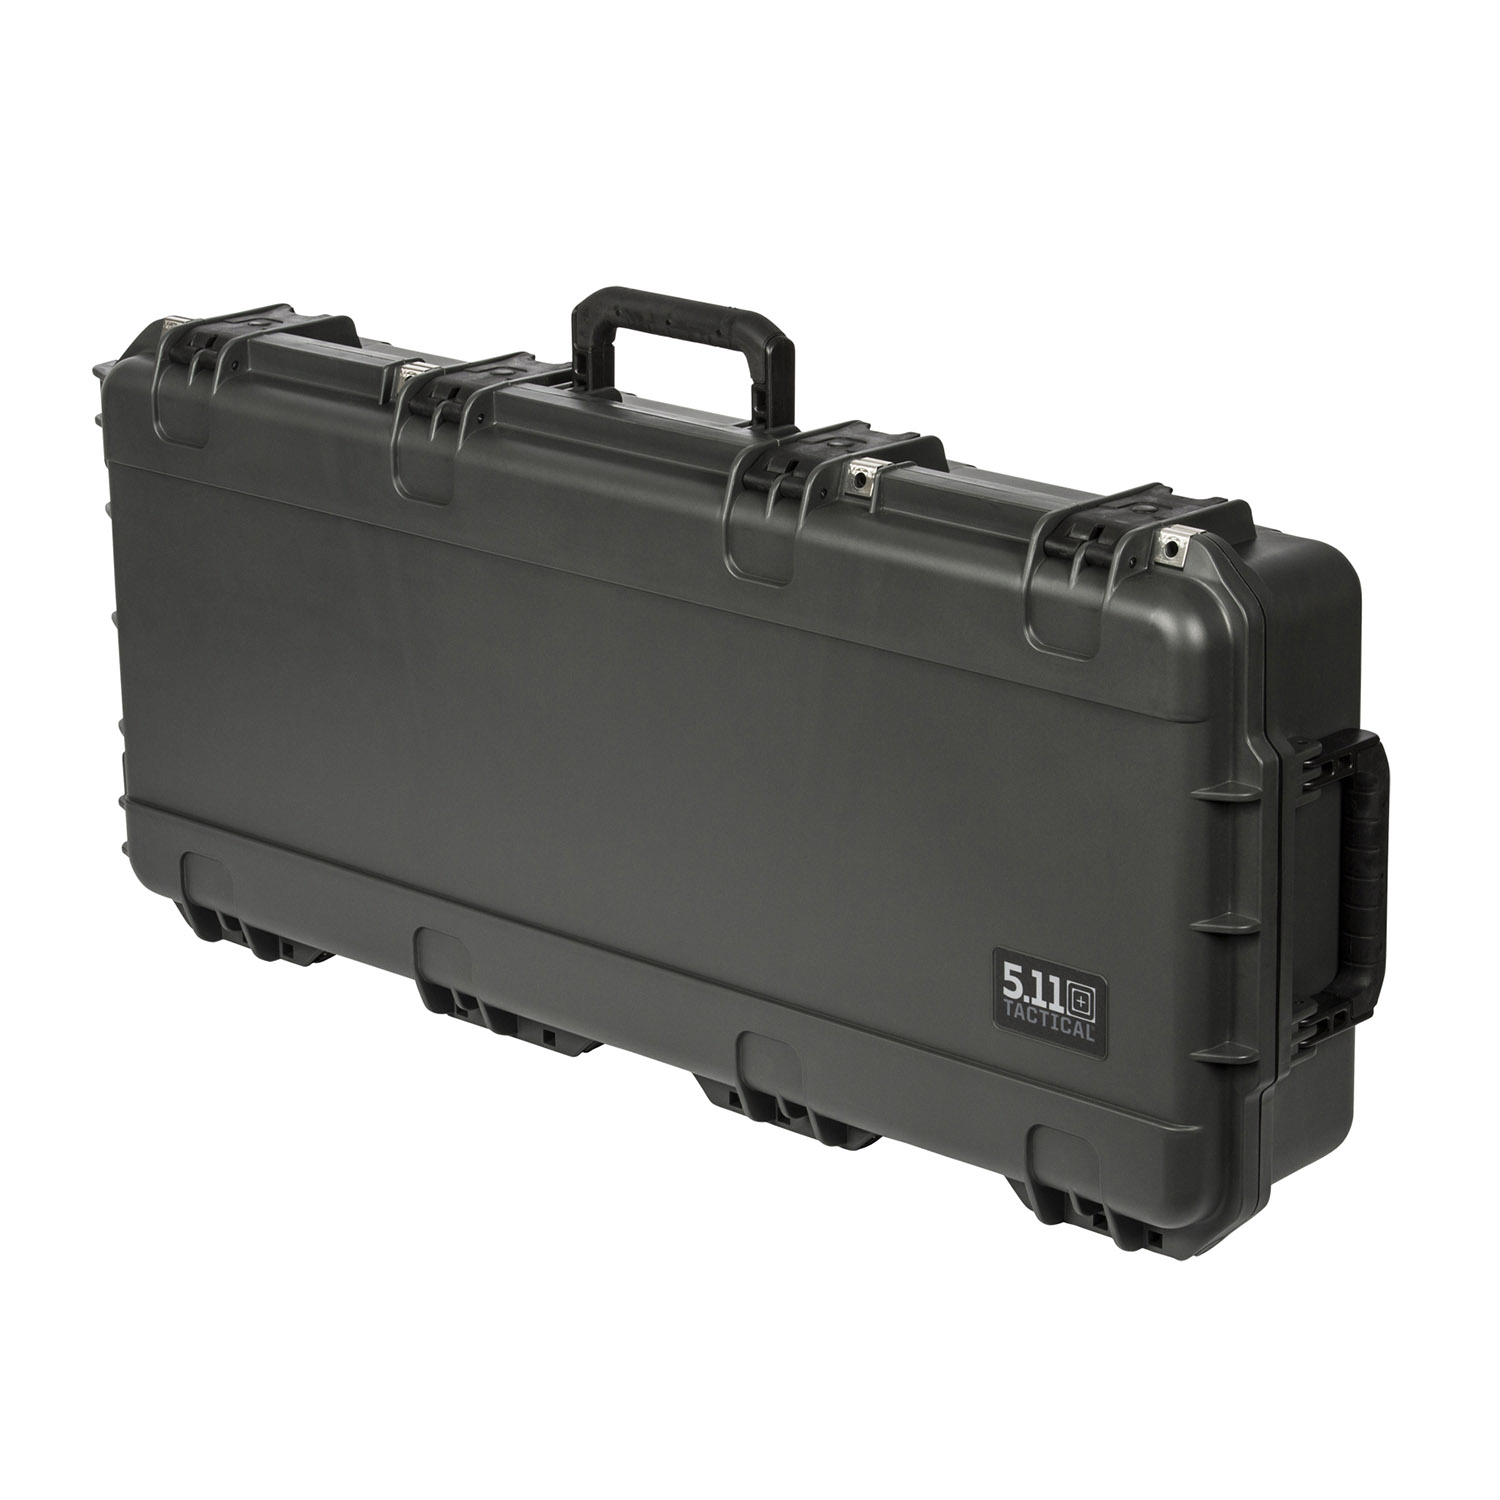 5.11 Tactical Hard Case 36